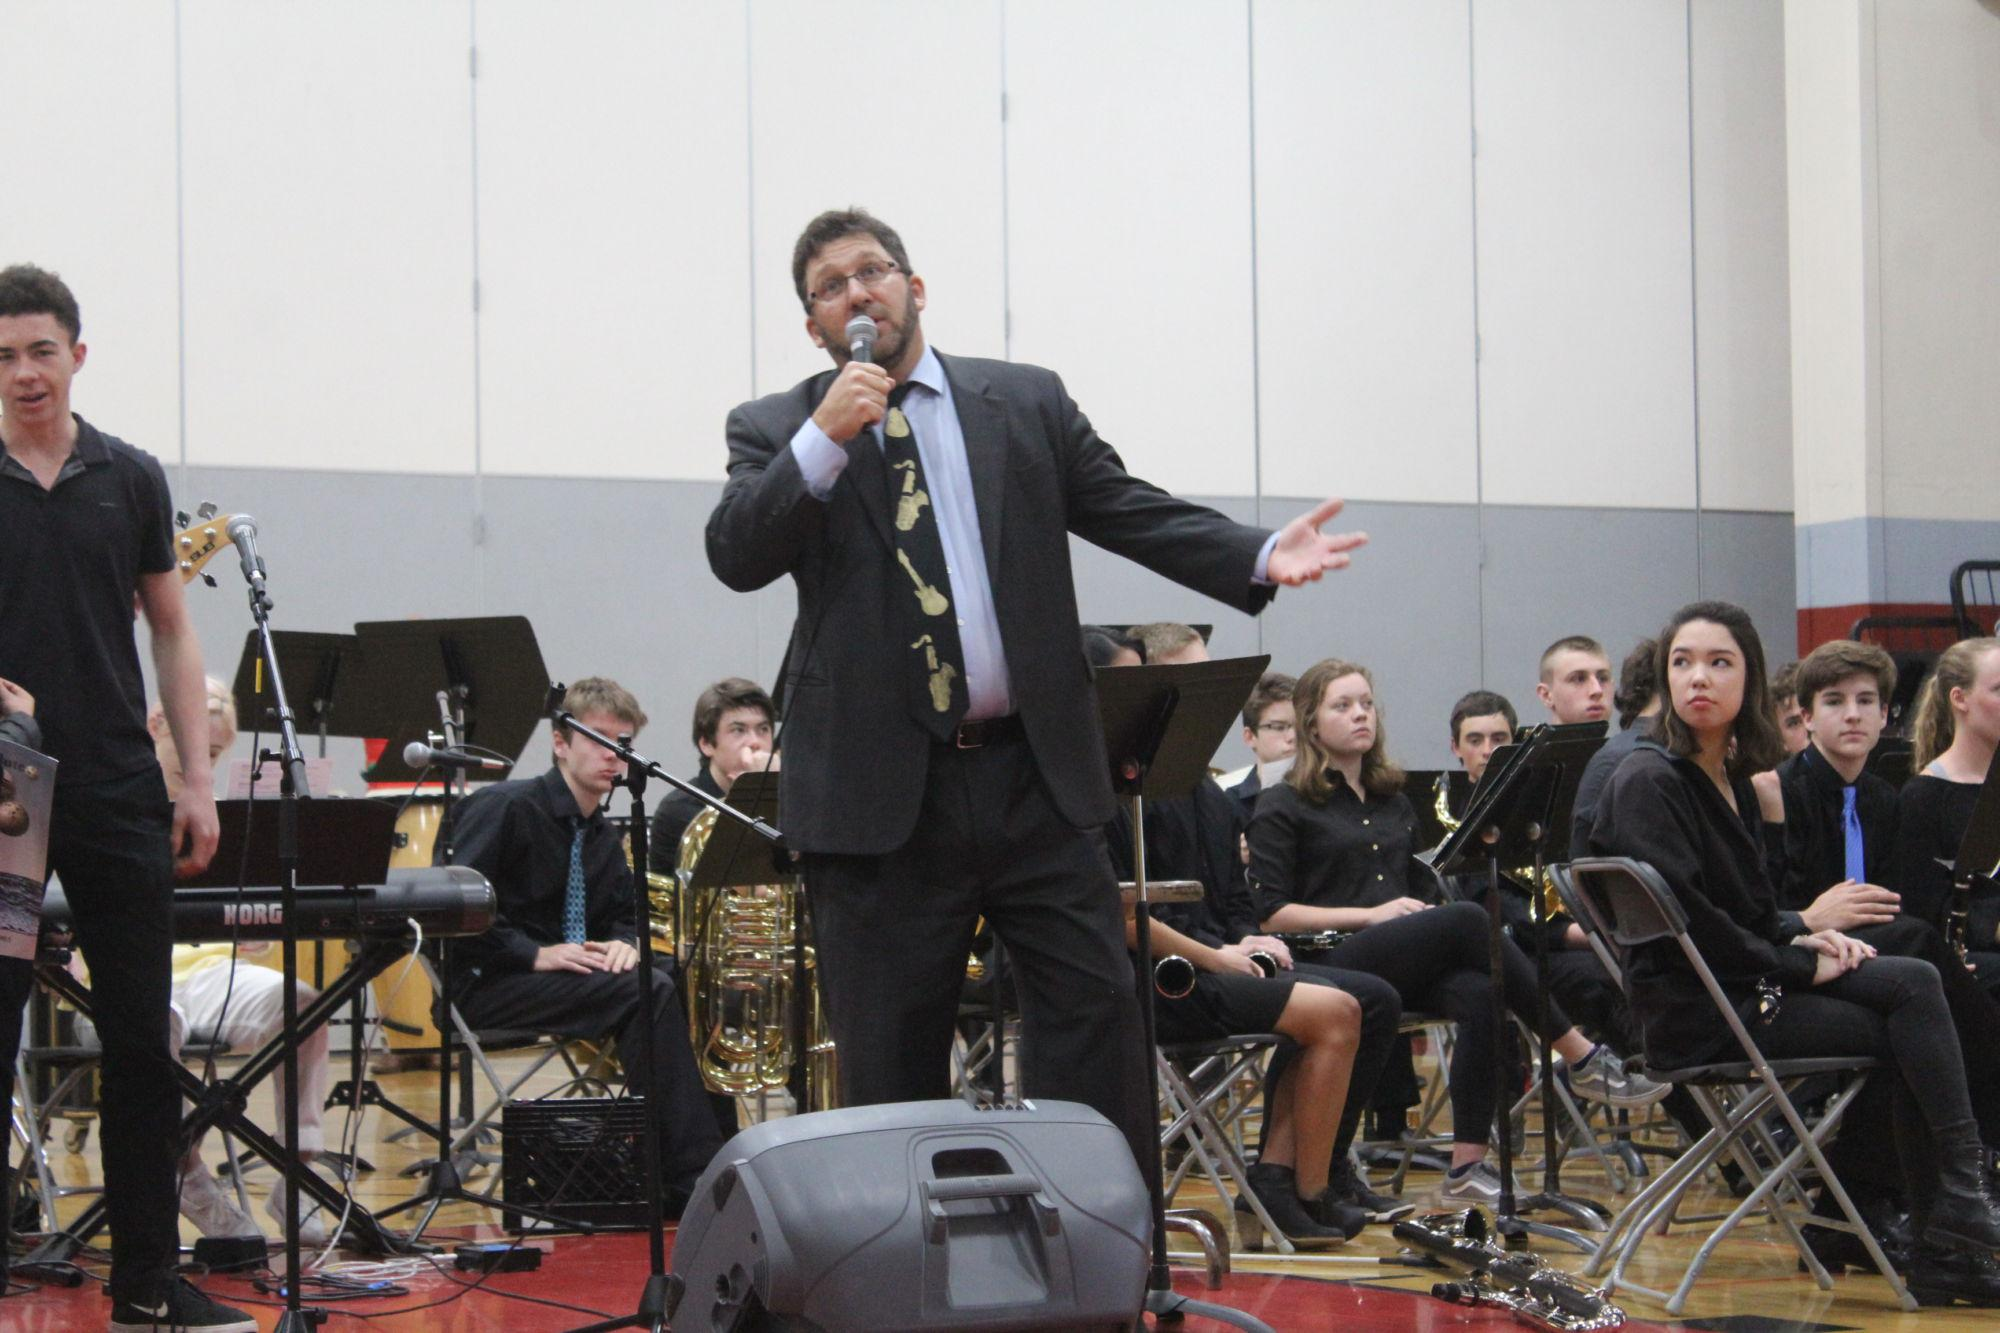 Band+Teacher%2C+John+Mattern%2C+has+been+pushing+to+put+on+a+school-wide+performance+for+the+last+14+years.